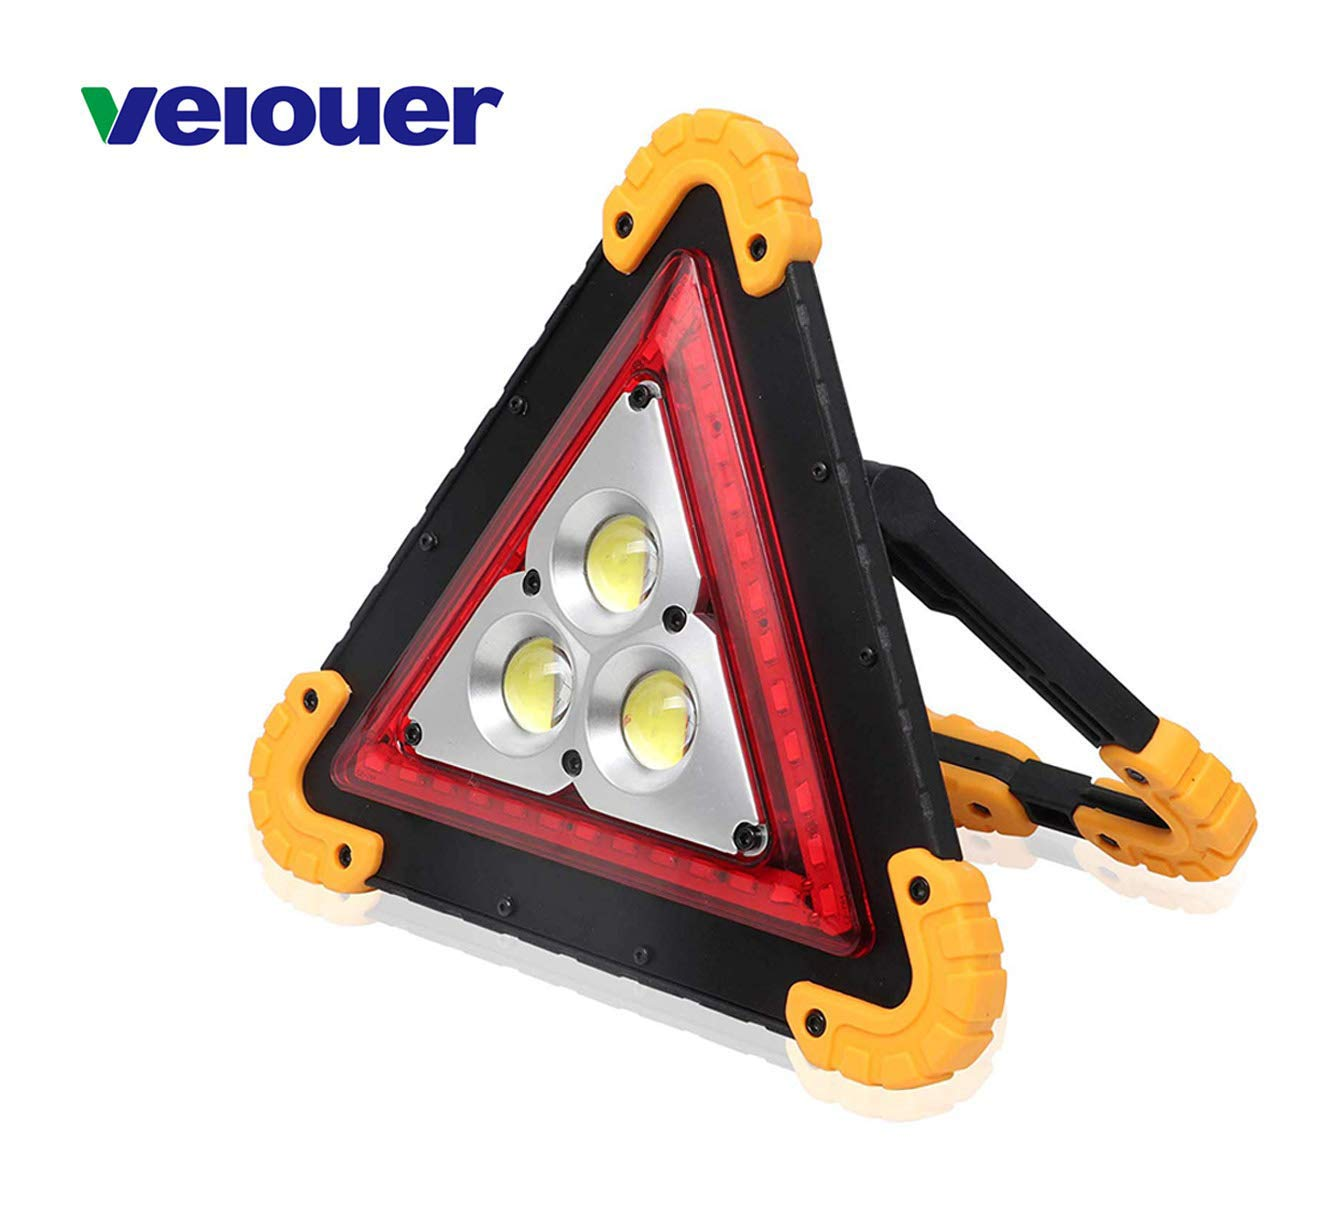 Velouer LED Work Light Rechargeable Portable Waterproof Triangle Warning Camping Outdoor Work Light Camping Hiking Emergency Car Repairin